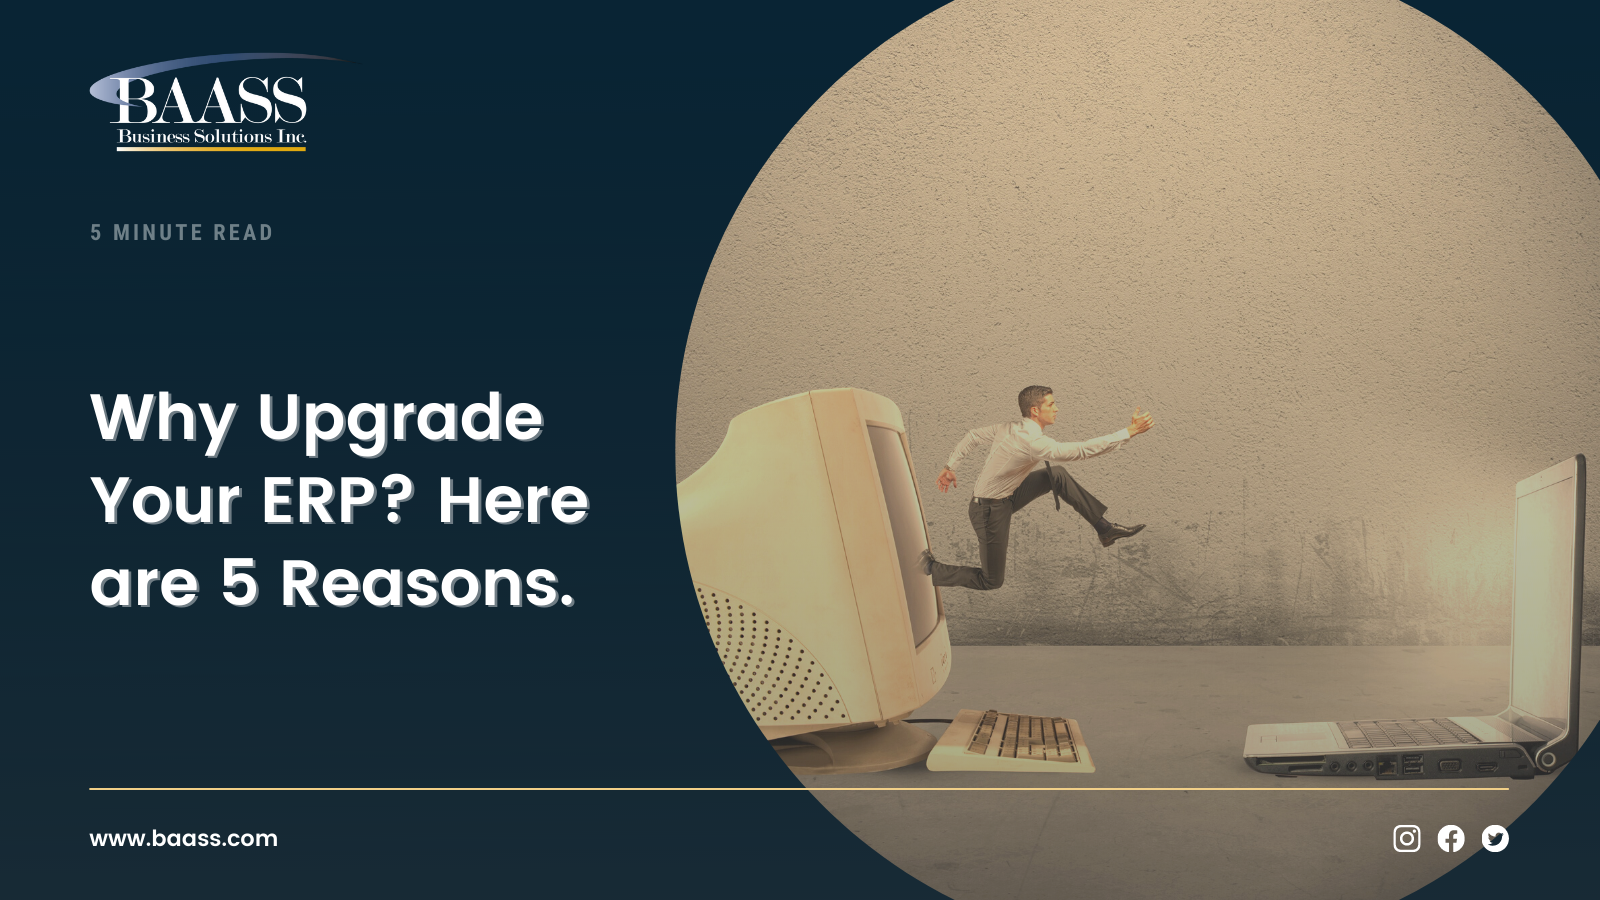 Why Upgrade Your ERP? Here are 5 Reasons.